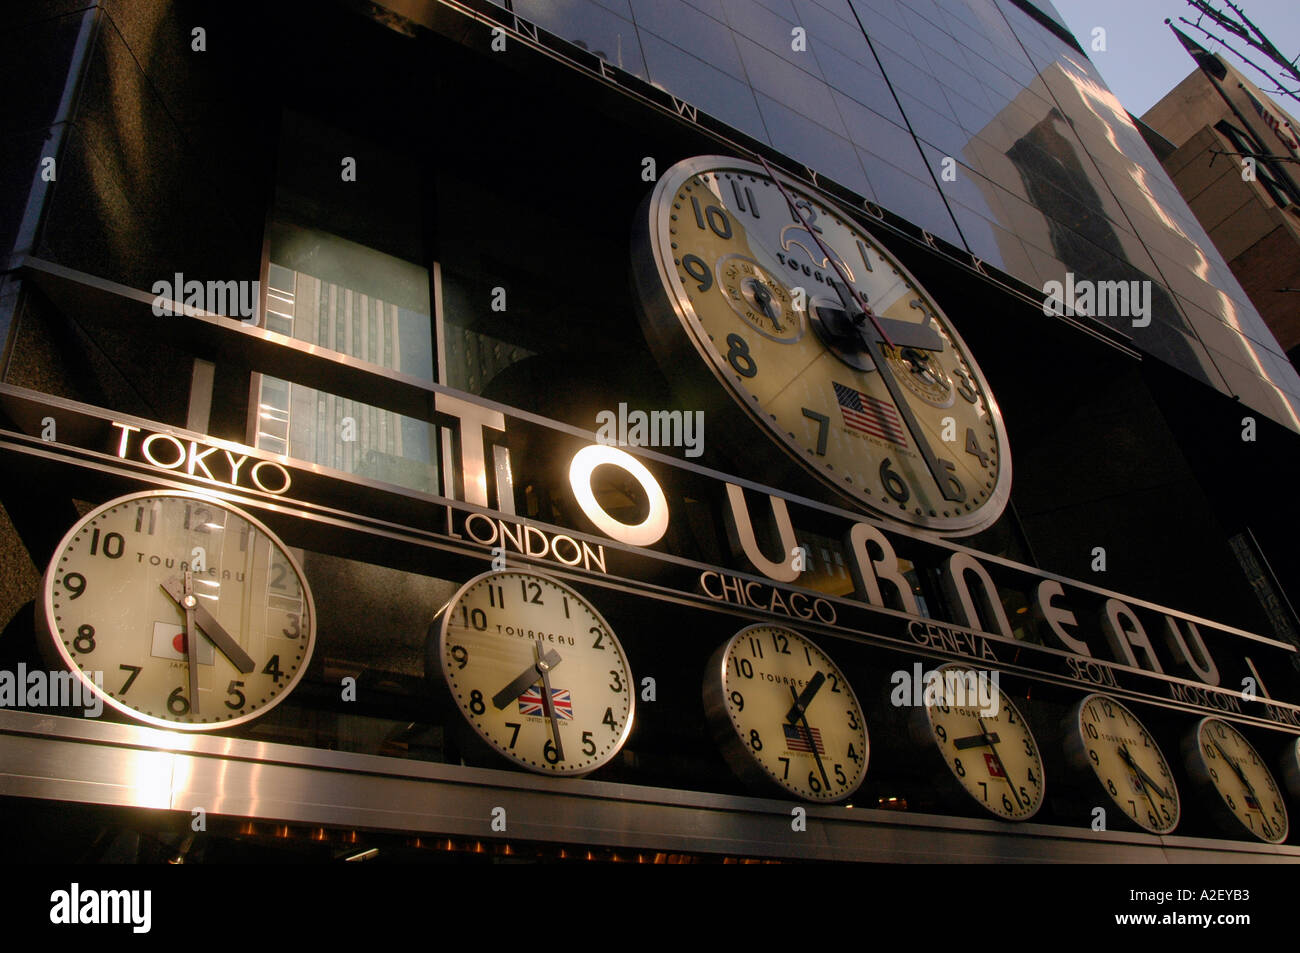 Clocks showing times in various parts of the world at the Tourneau